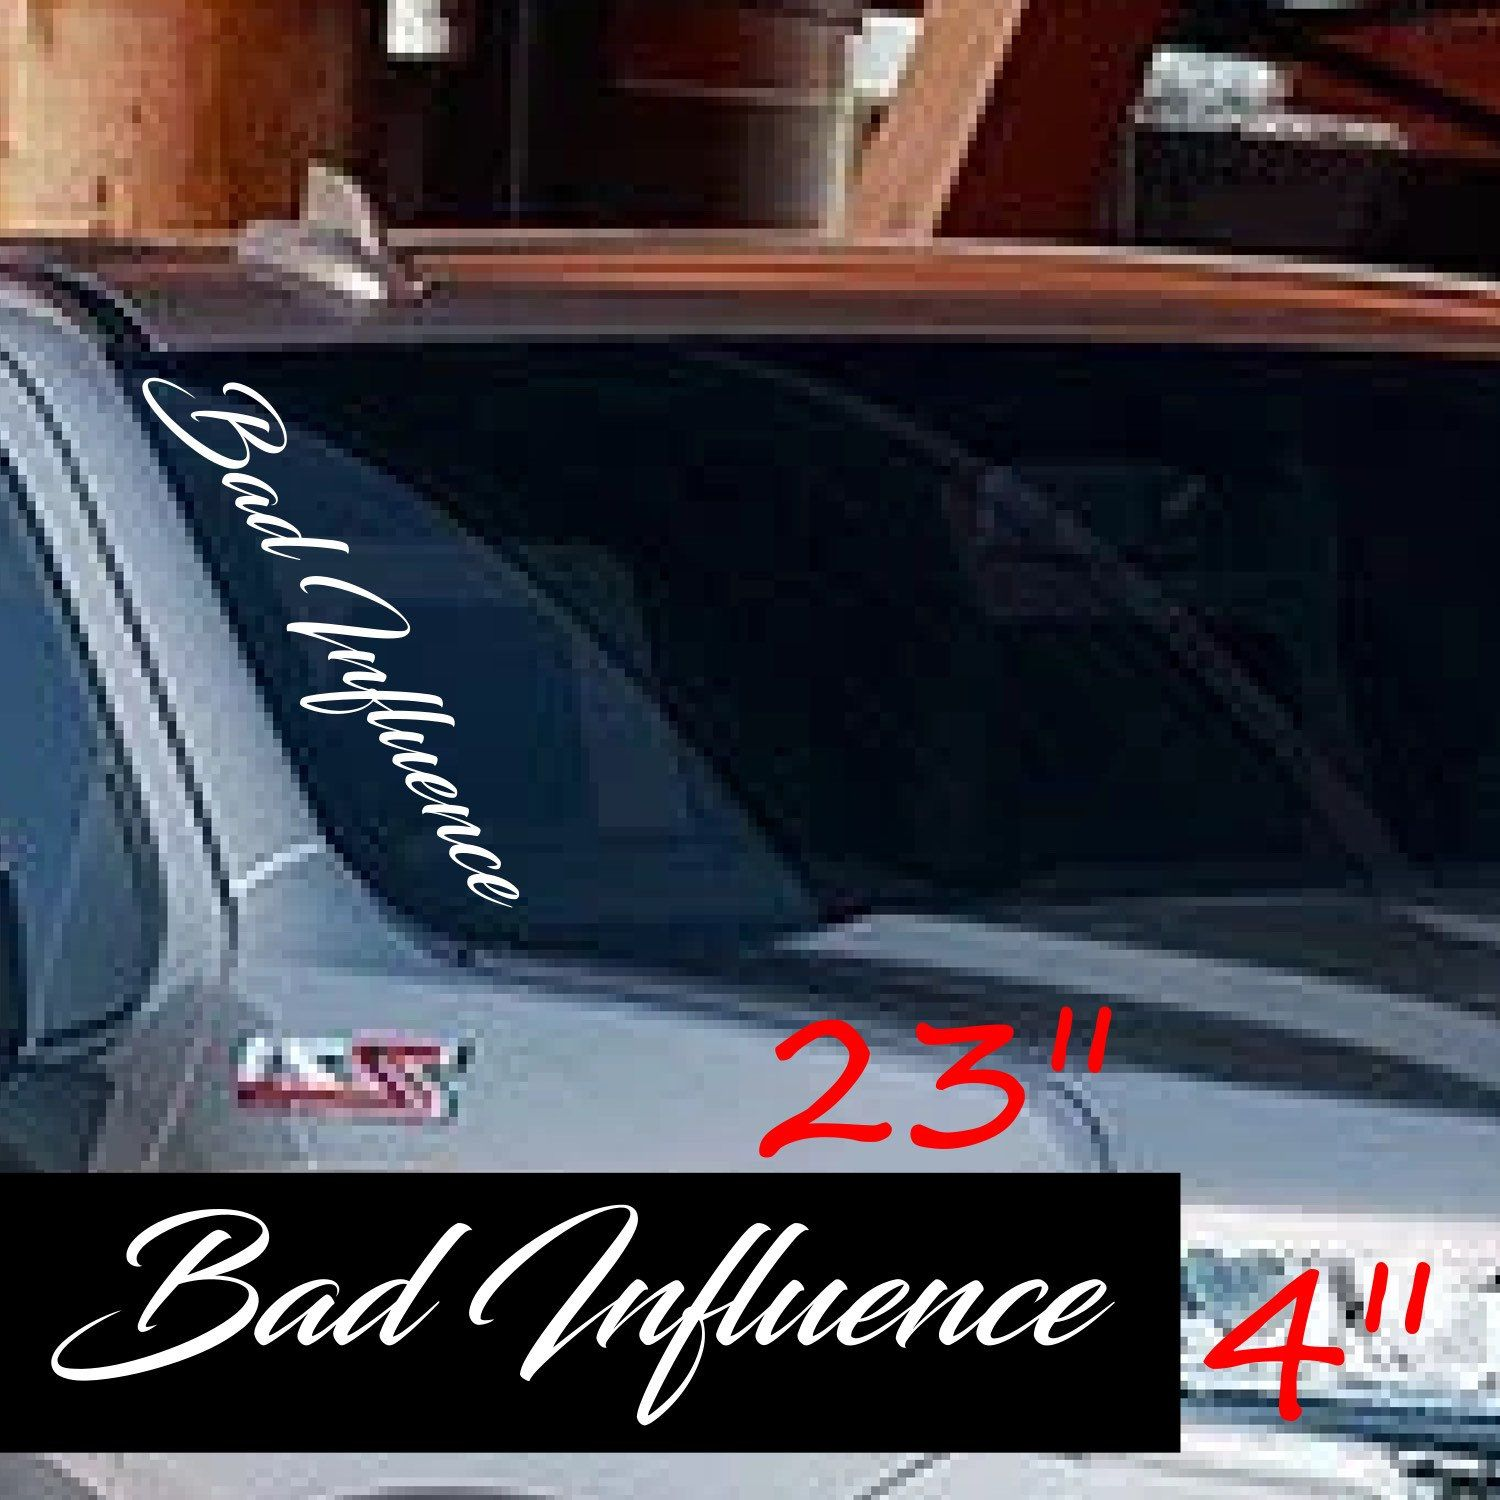 Bad Influence Decal Pillar Windshield Tundra Chevy Ford Etsy Truck Window Stickers Windshield Truck Decals [ 1500 x 1500 Pixel ]